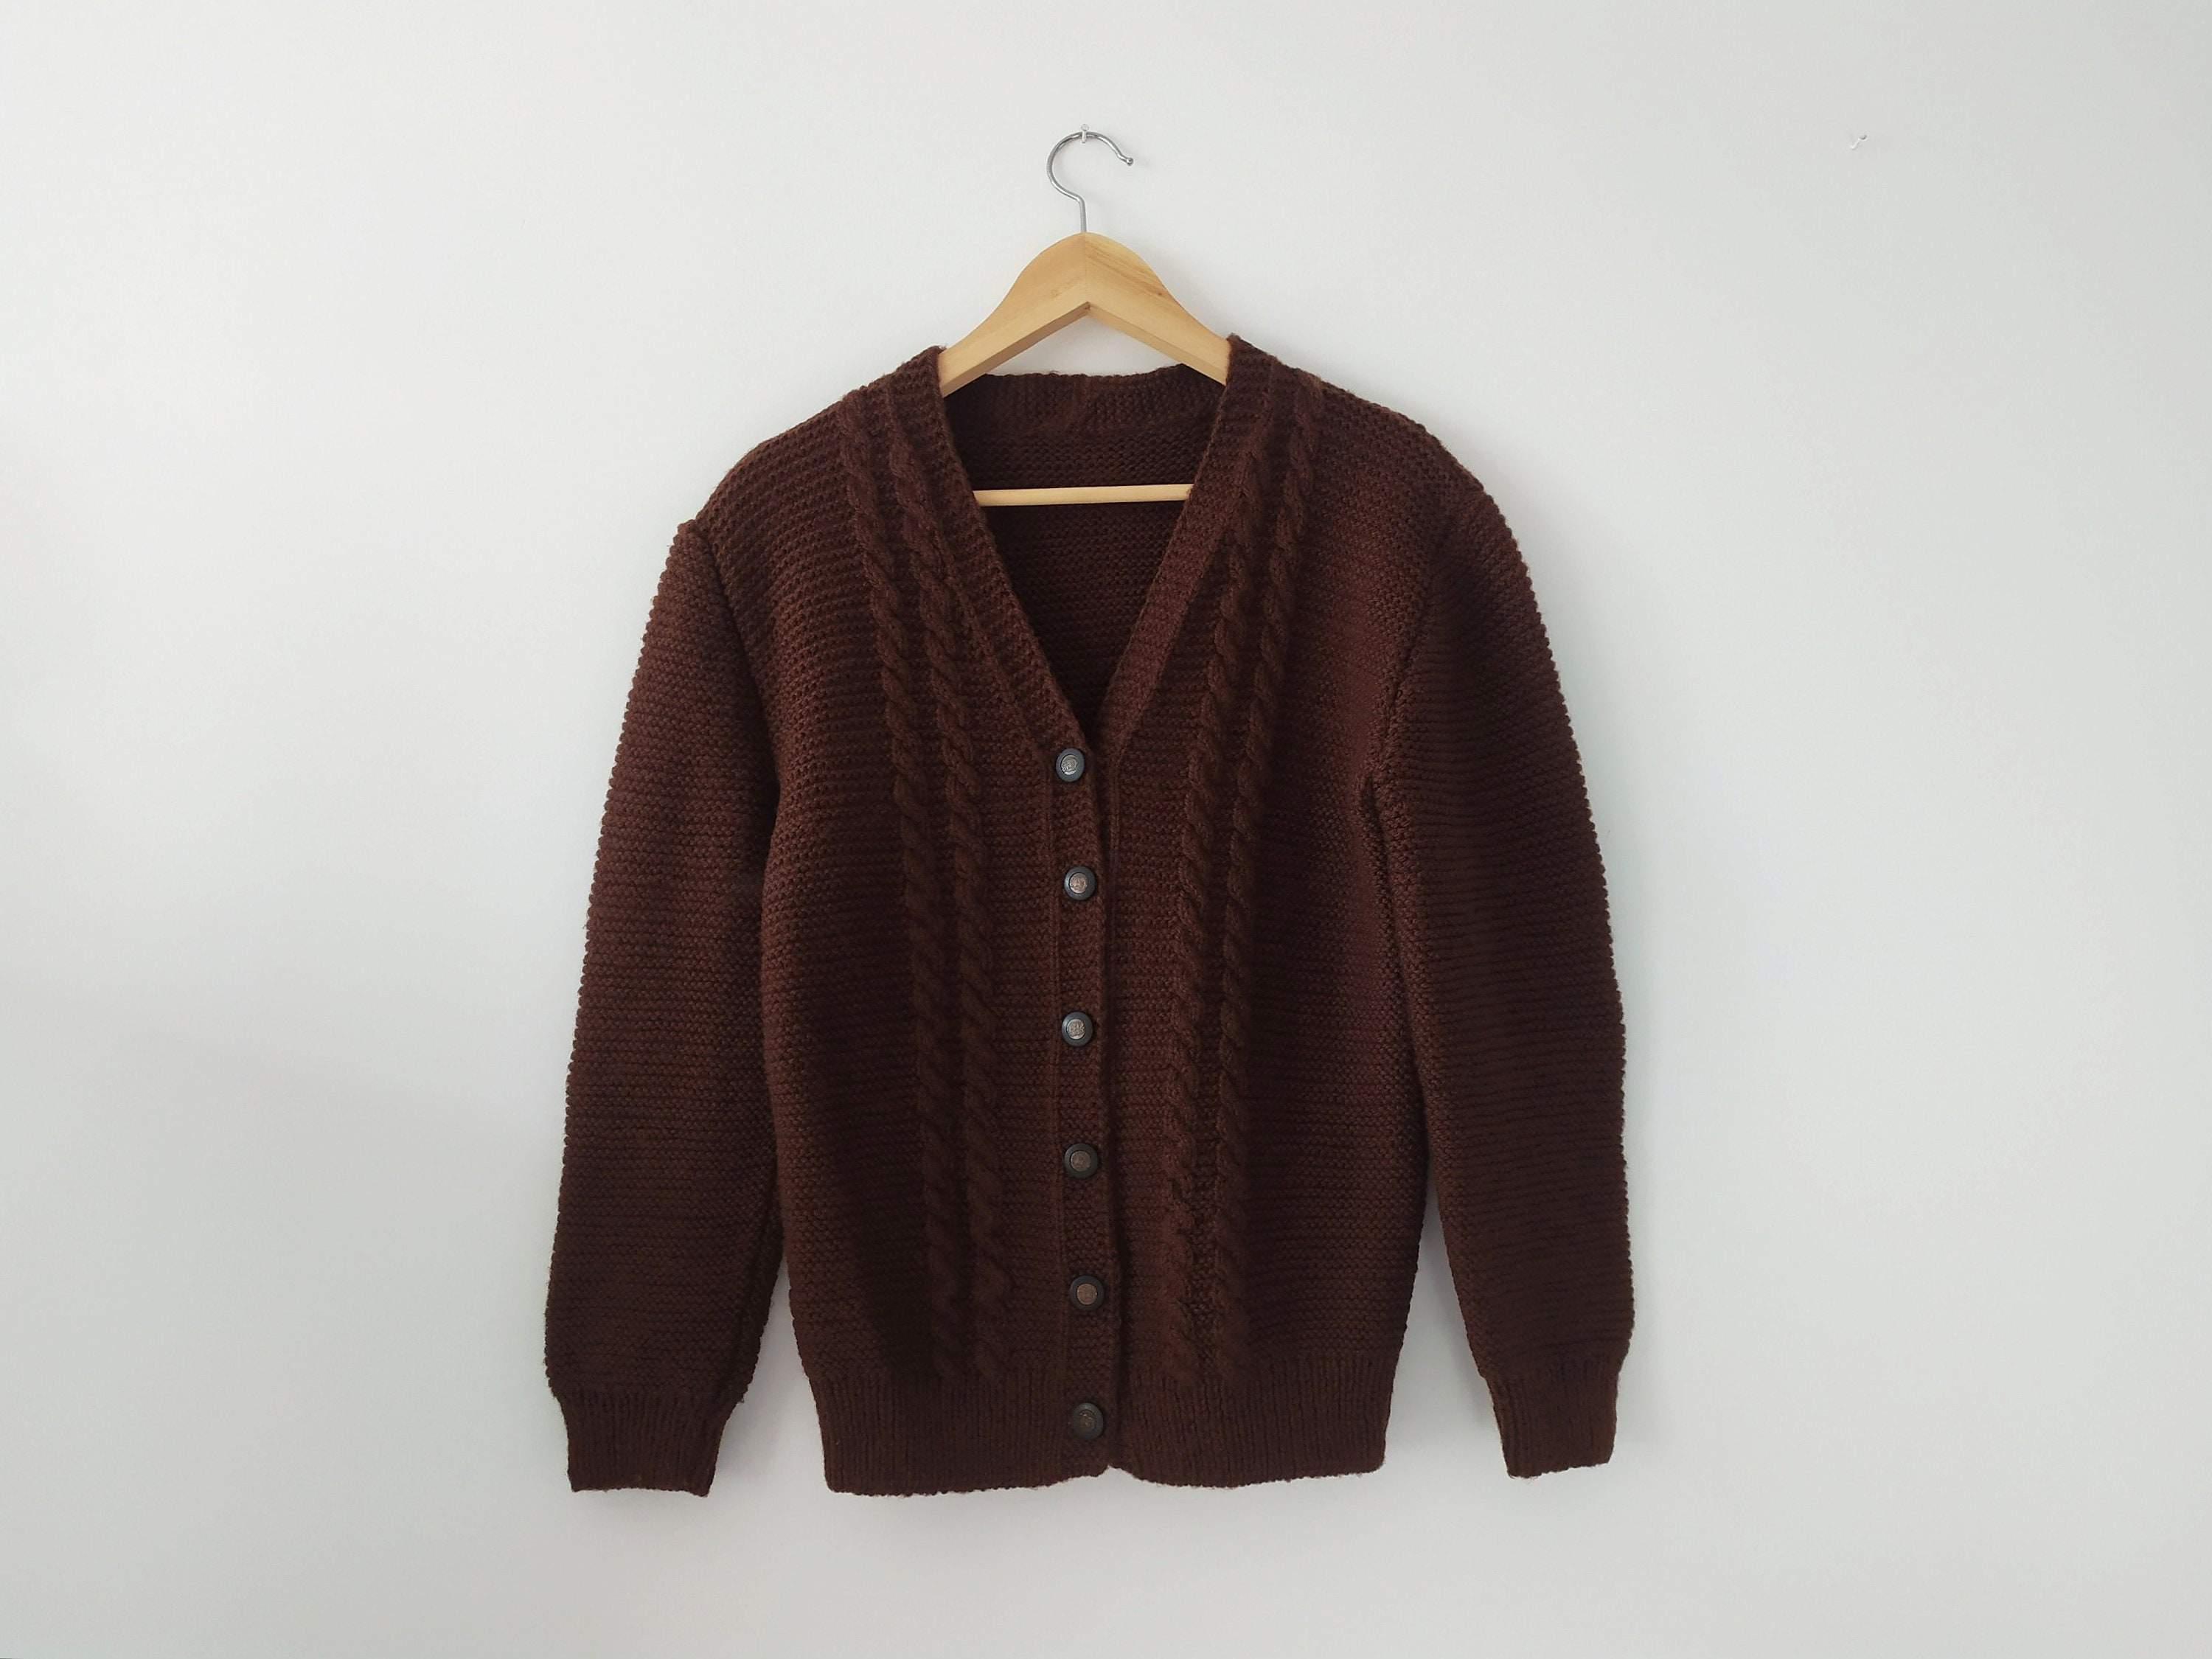 80s Sweatshirts, Sweaters, Vests | Women Vintage Dark Chocolate Brown Handmade Cardigan, 1980S, Chunky, Button Front, Cable Knit Pattern Sweater, SM $54.23 AT vintagedancer.com